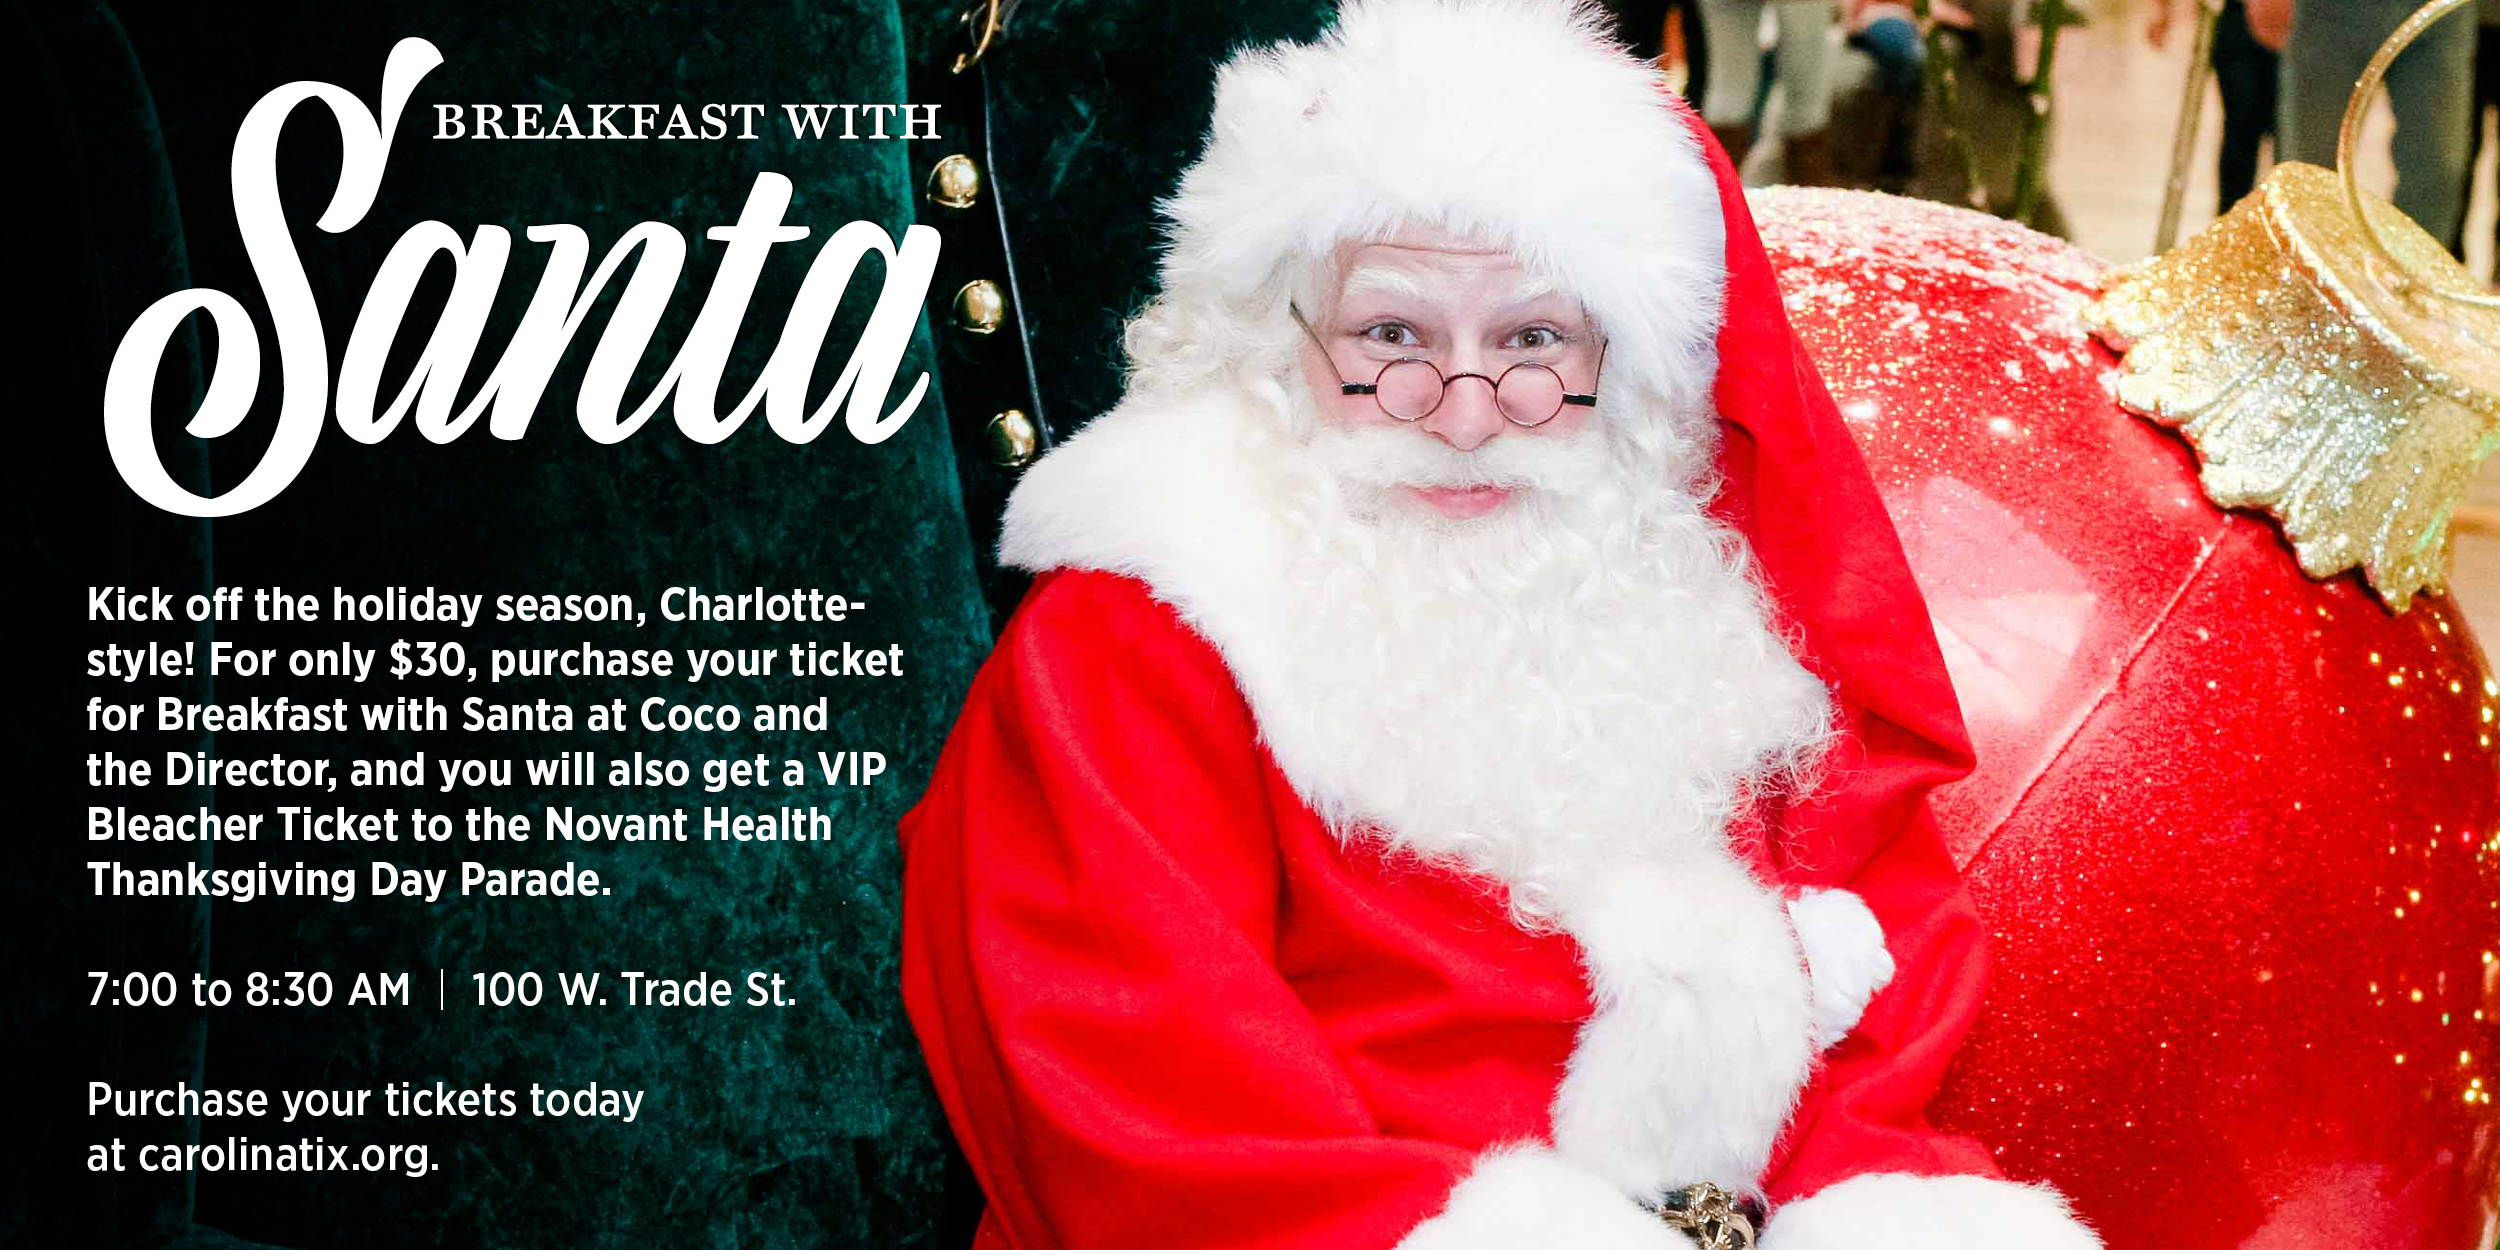 Start your day with breakfast and photo ops with Santa Claus himself.